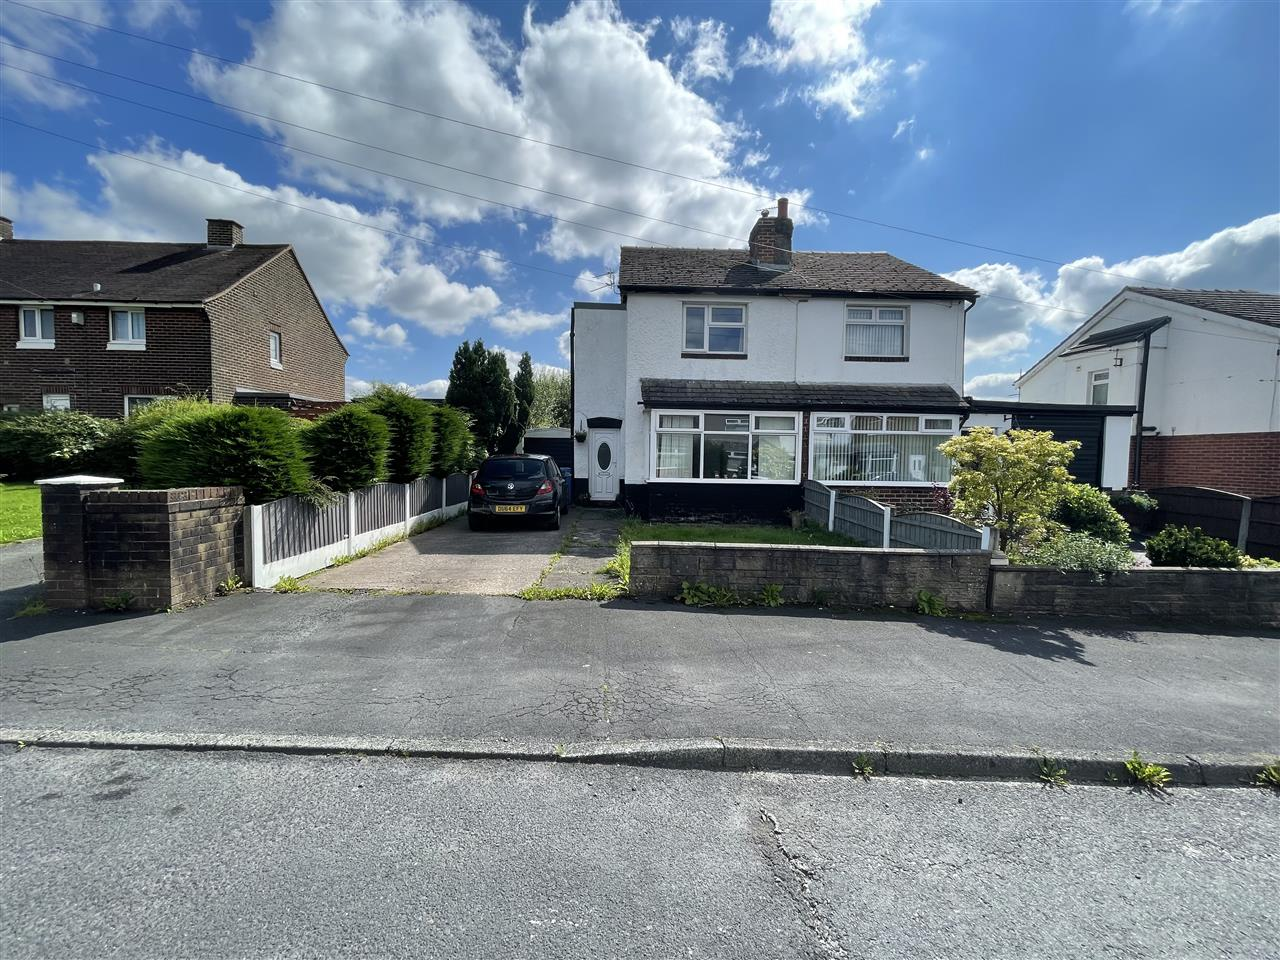 2 bed semi-detached for sale in Rothwell Road, Anderton - Property Image 1